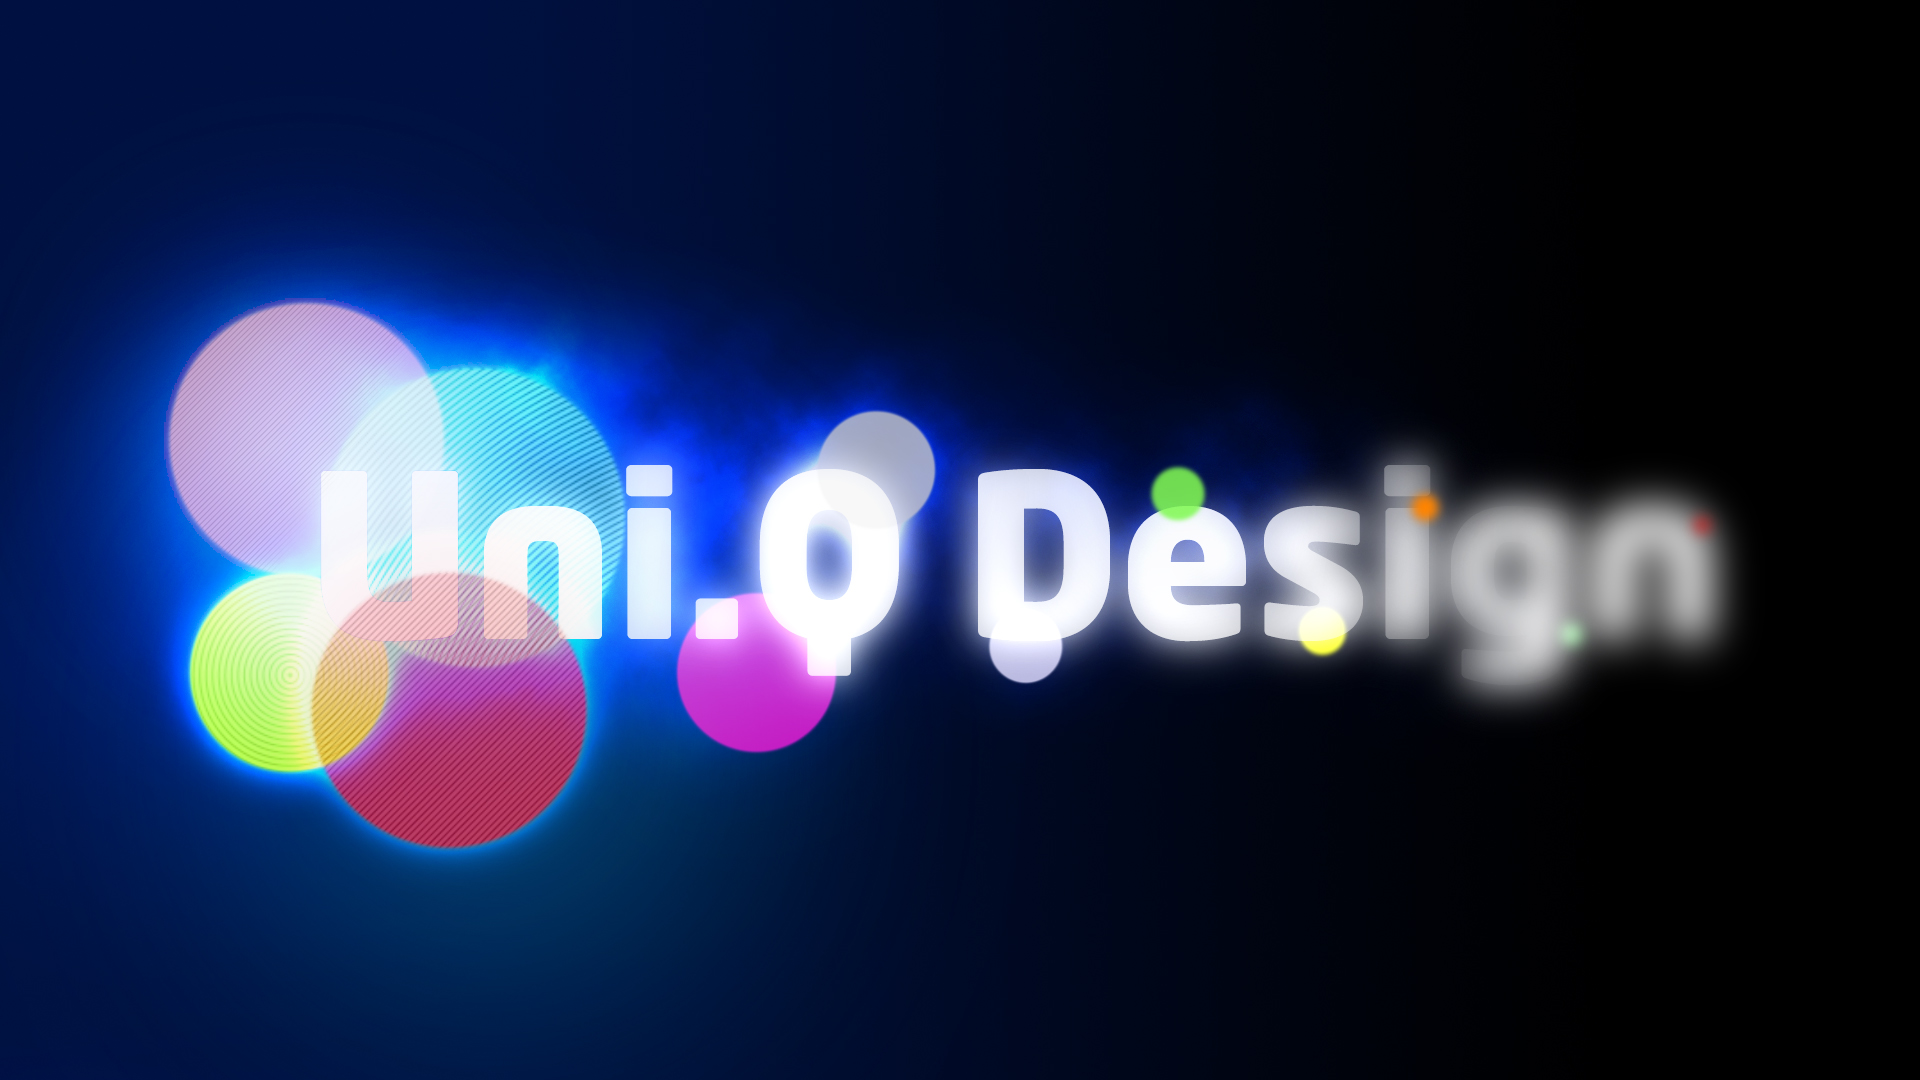 Free Download And Q Wallpaper Paste 1920x1080 For Your